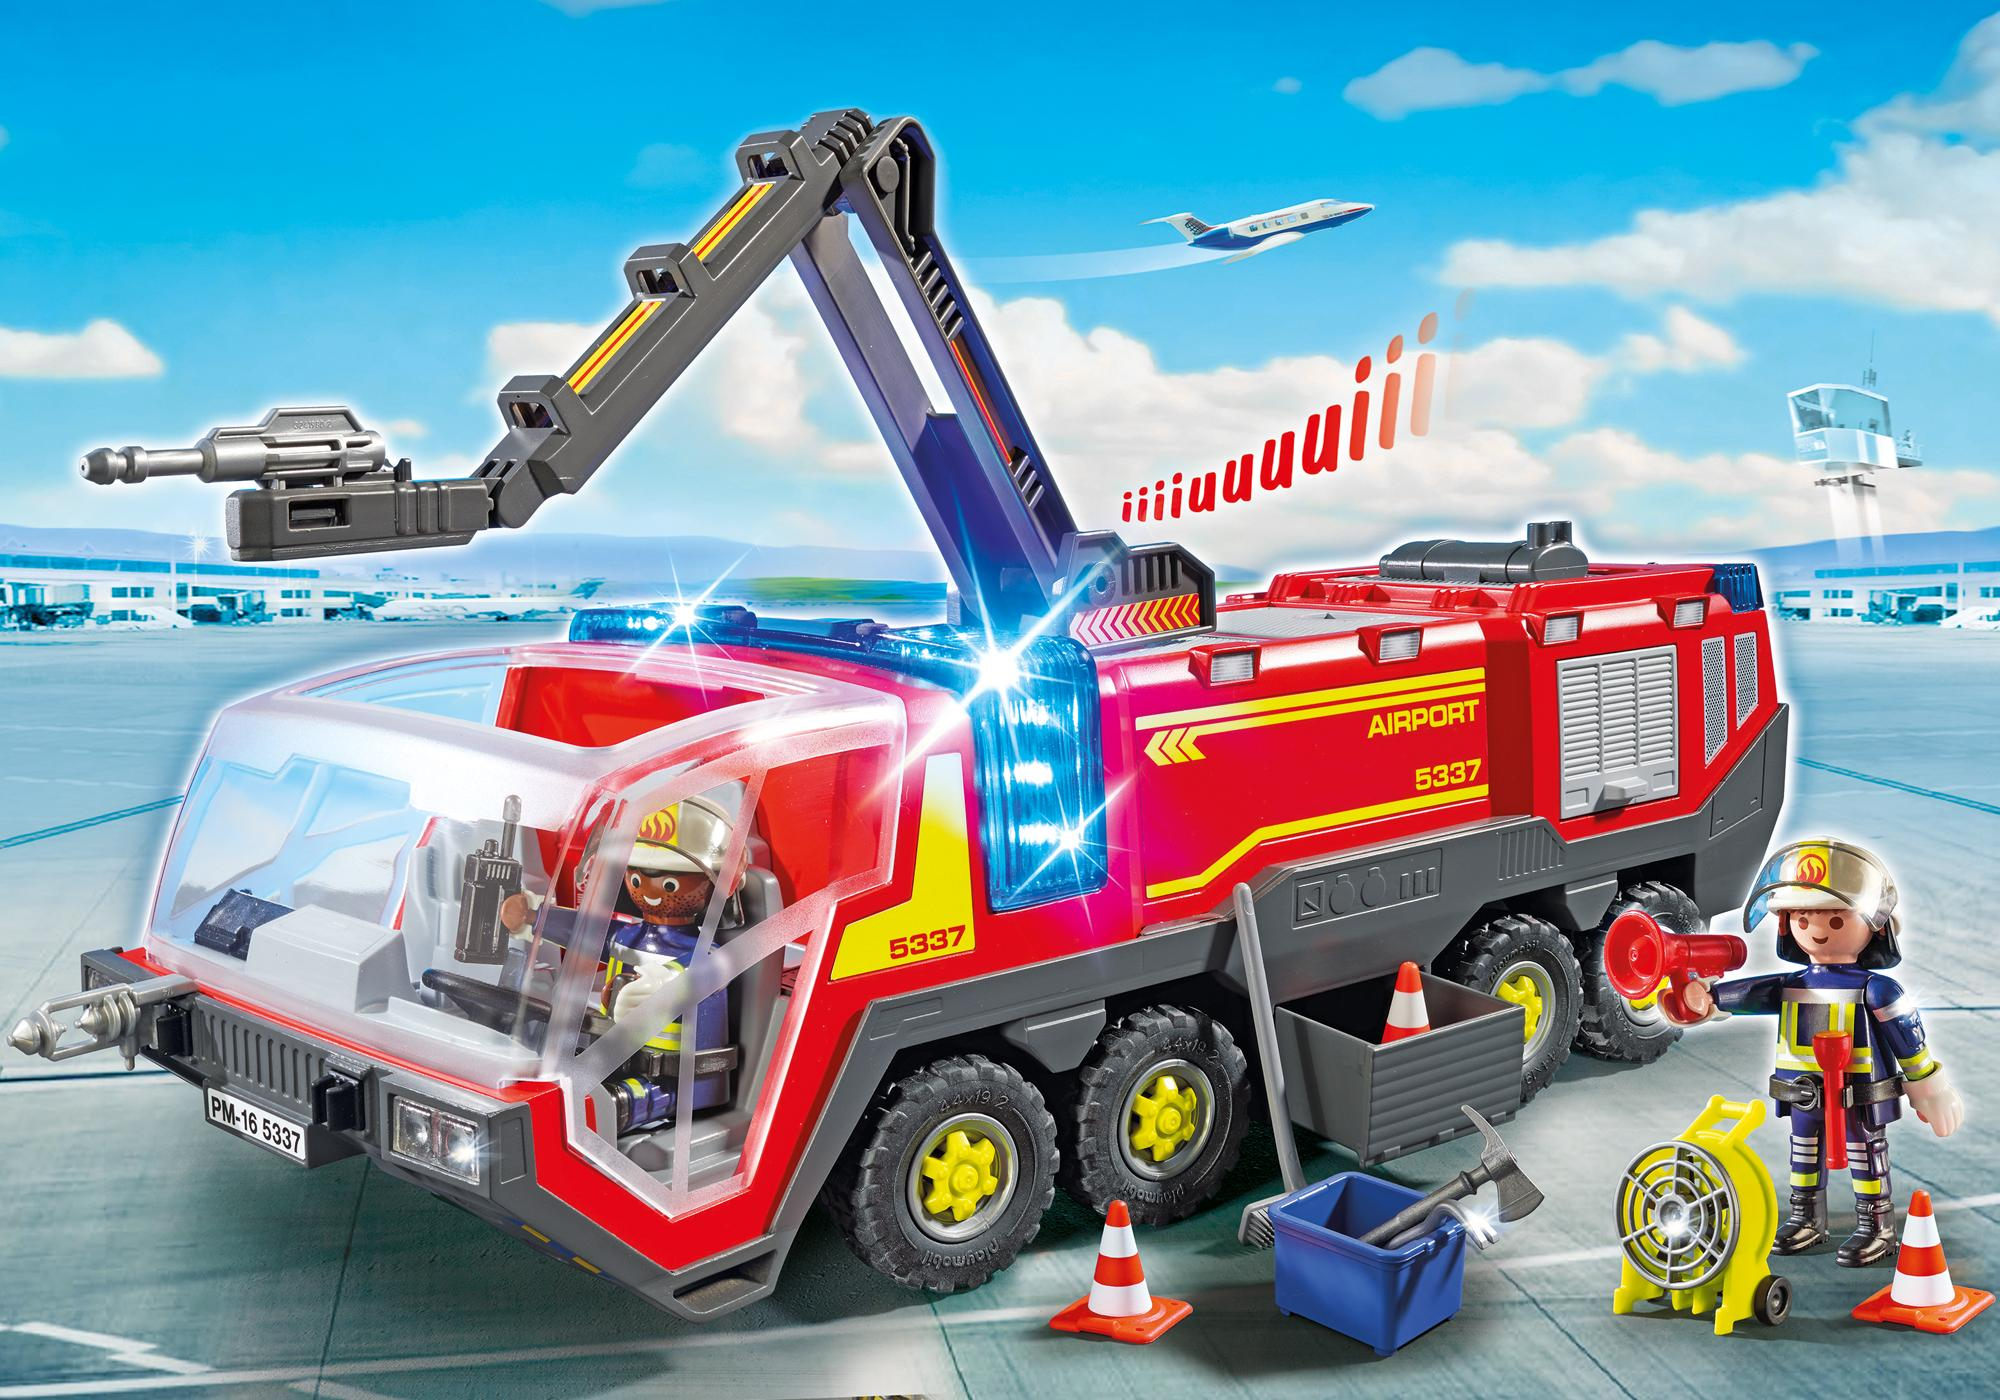 5337_product_detail/Airport Fire Engine with Lights and Sound